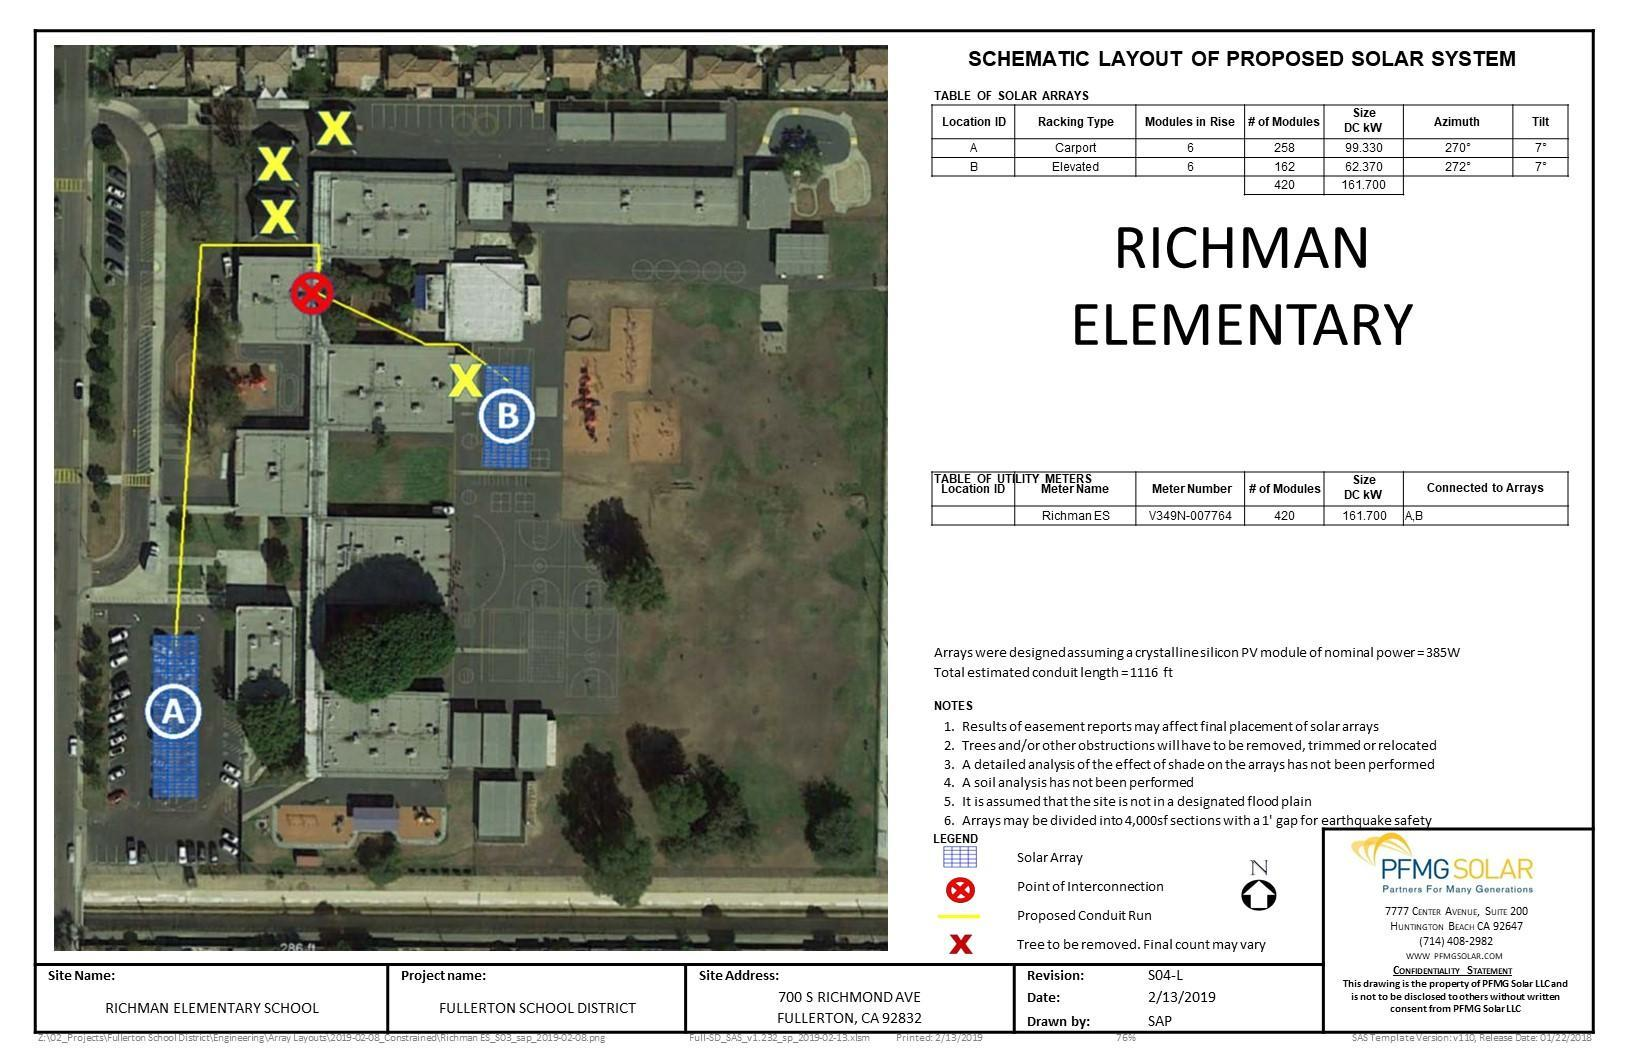 Richman Elementary Schematic Layout of Proposed Solar System